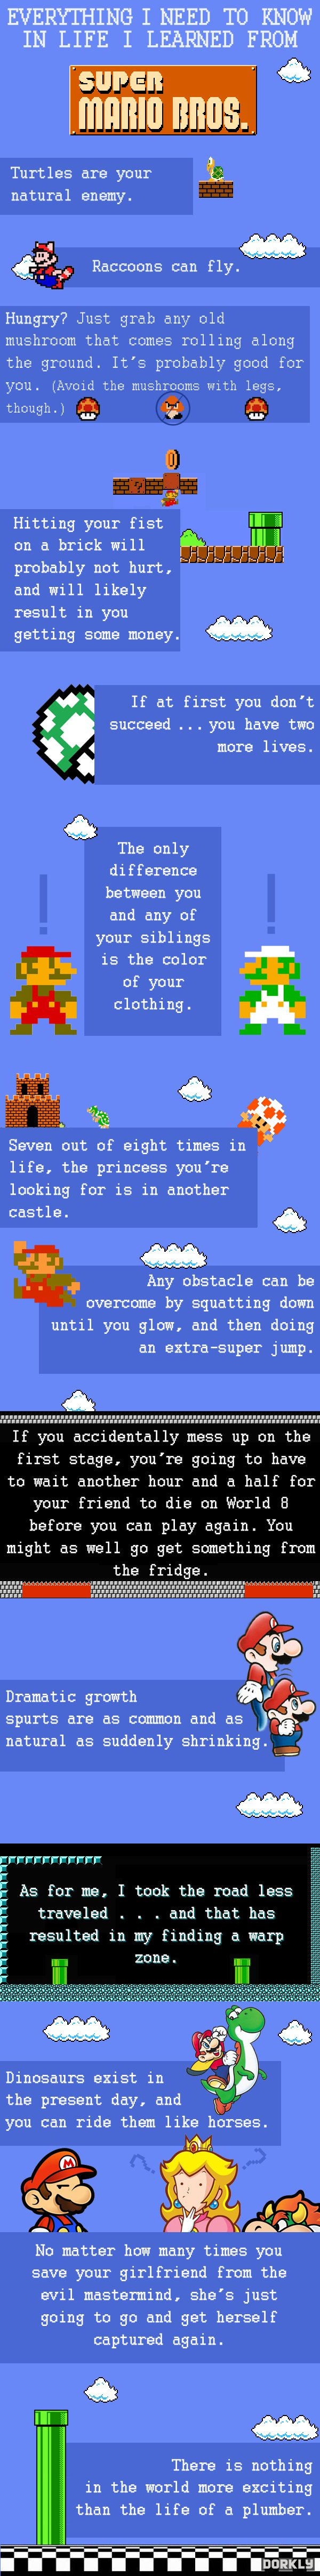 unlikely lifes lessons learned in super mario The following are 10 terrible but arguably true life lessons that i've gleaned from the classic video game super mario brothers (and a little from its sequels) 1 the more money you make, the longer you get to live every time you get 100 coins in super mario, you literally get another life that.